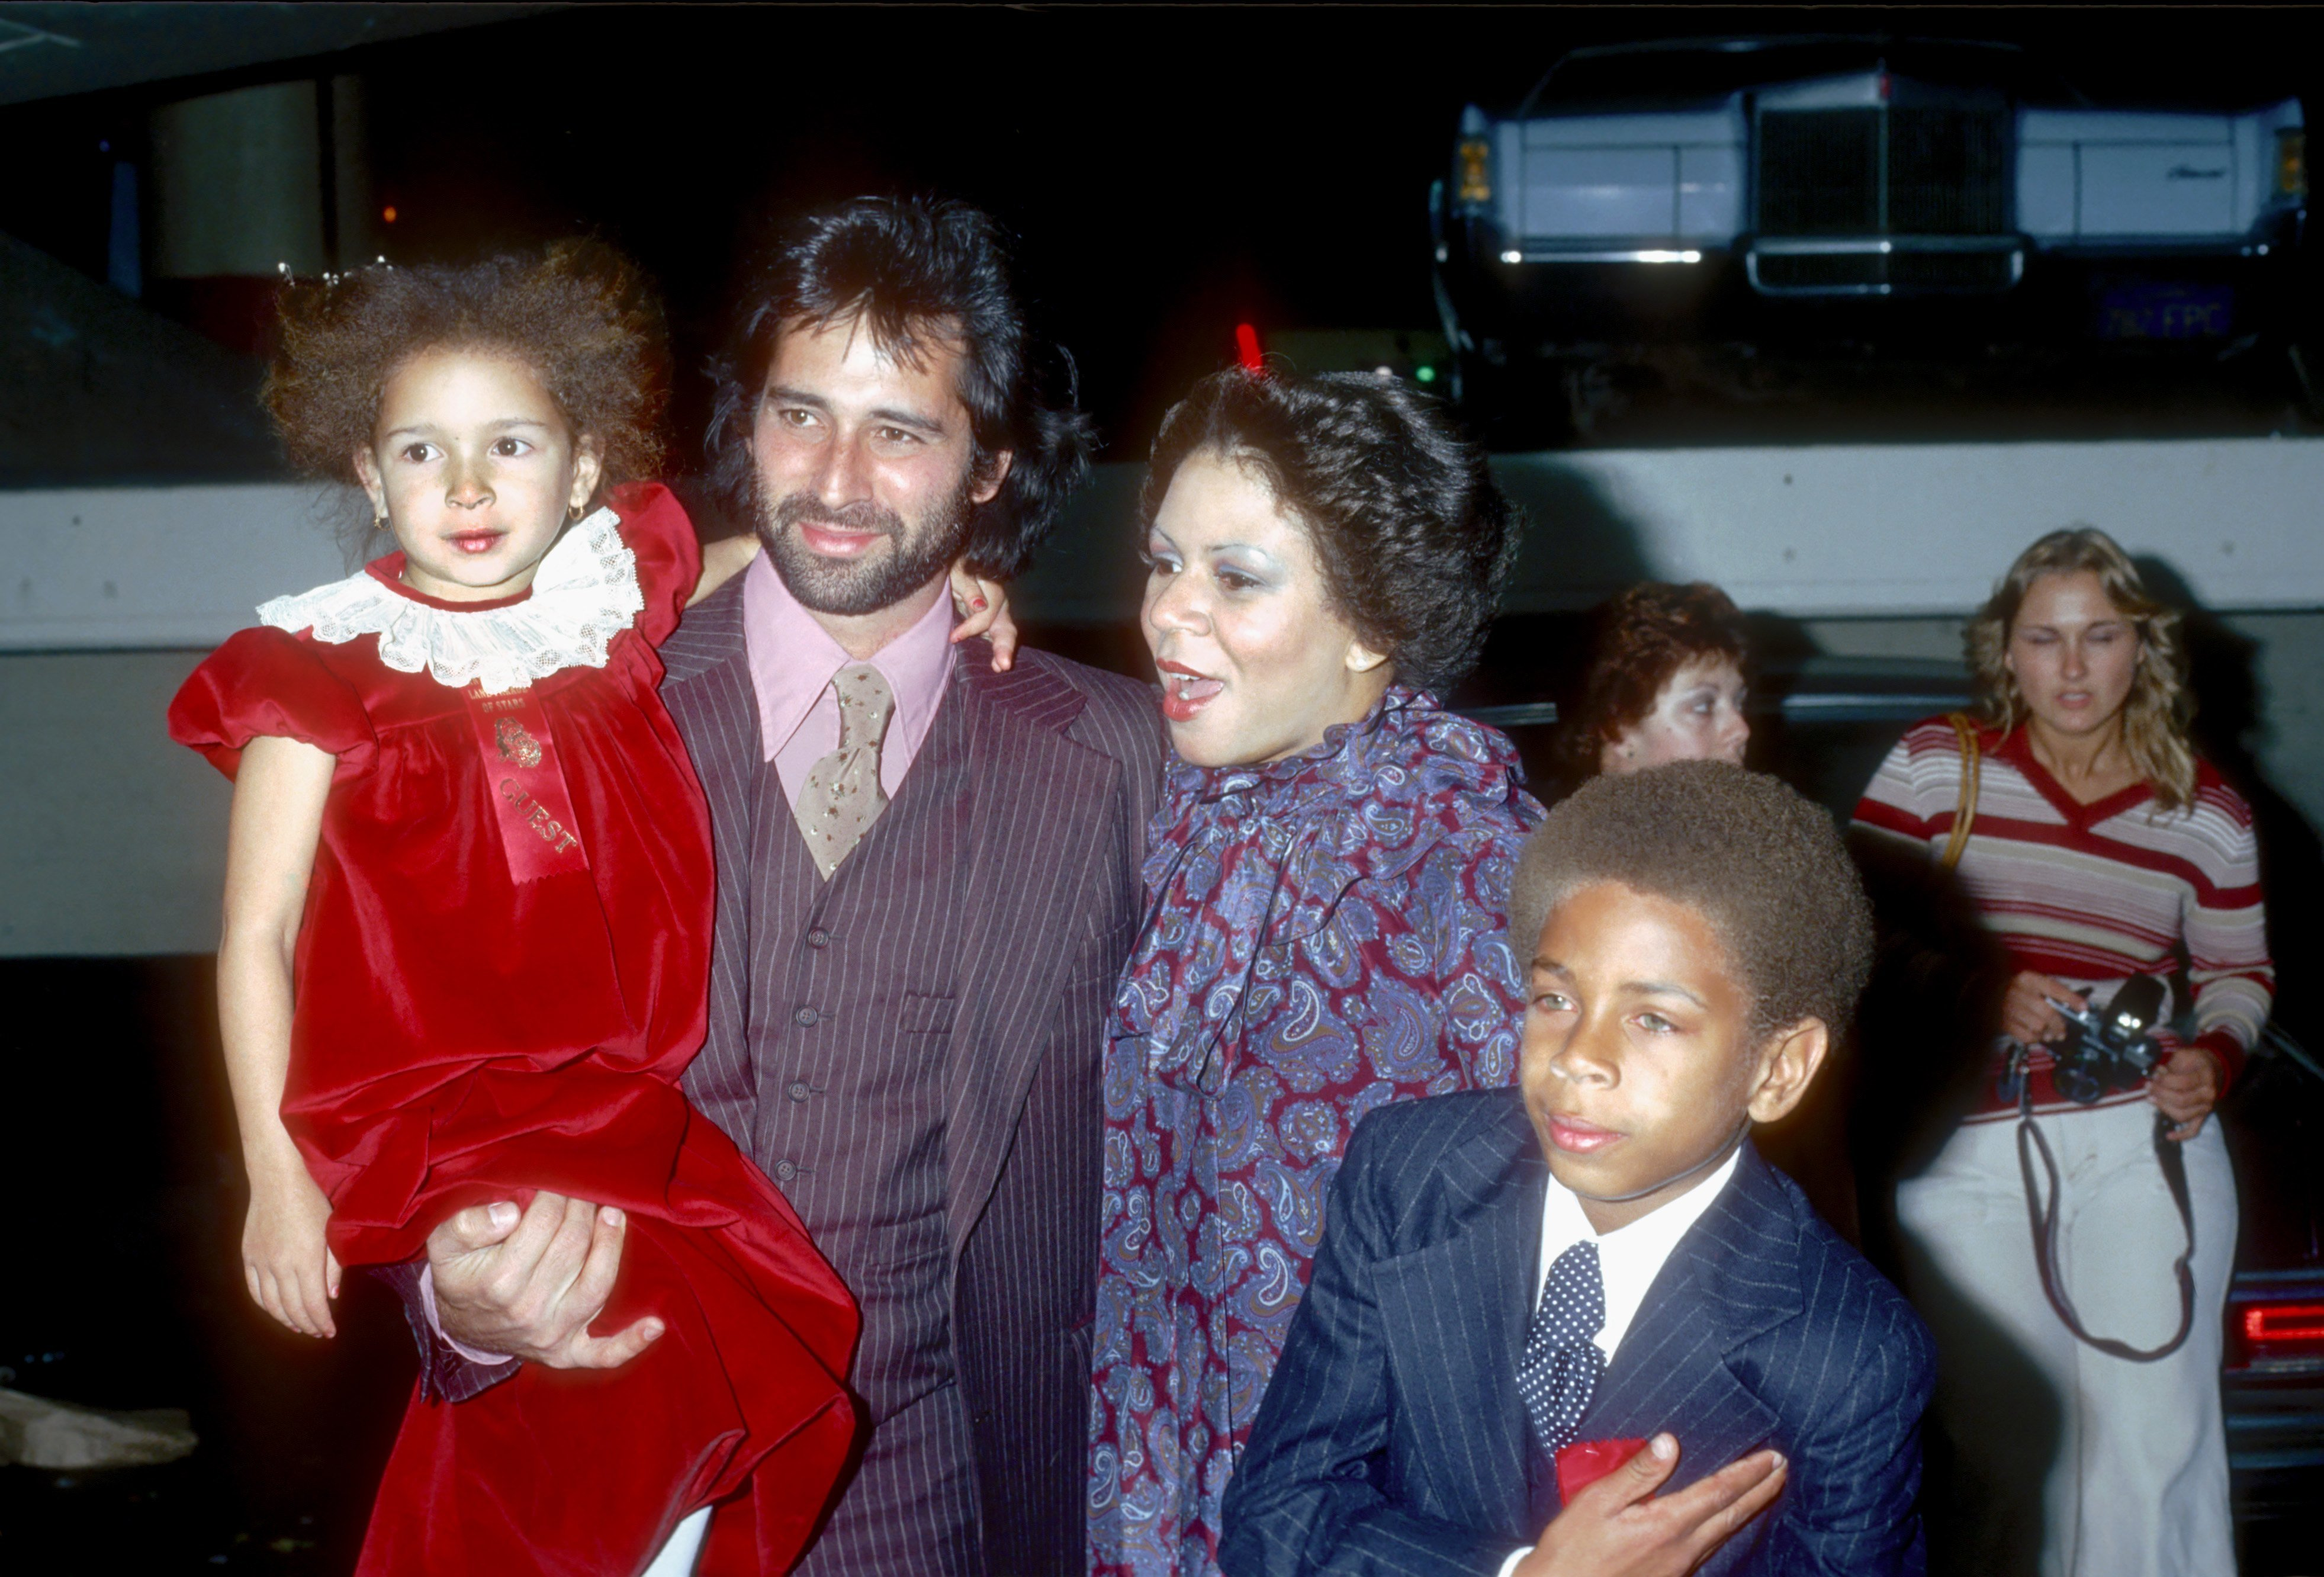 Singer Minnie Riperton, her husband Richard Rudolph and children Maya Rudolph and Marc Rudolph attend the Hollywood Christmas Parade in December 1978 in Los Angeles, California | Photo: Getty Images